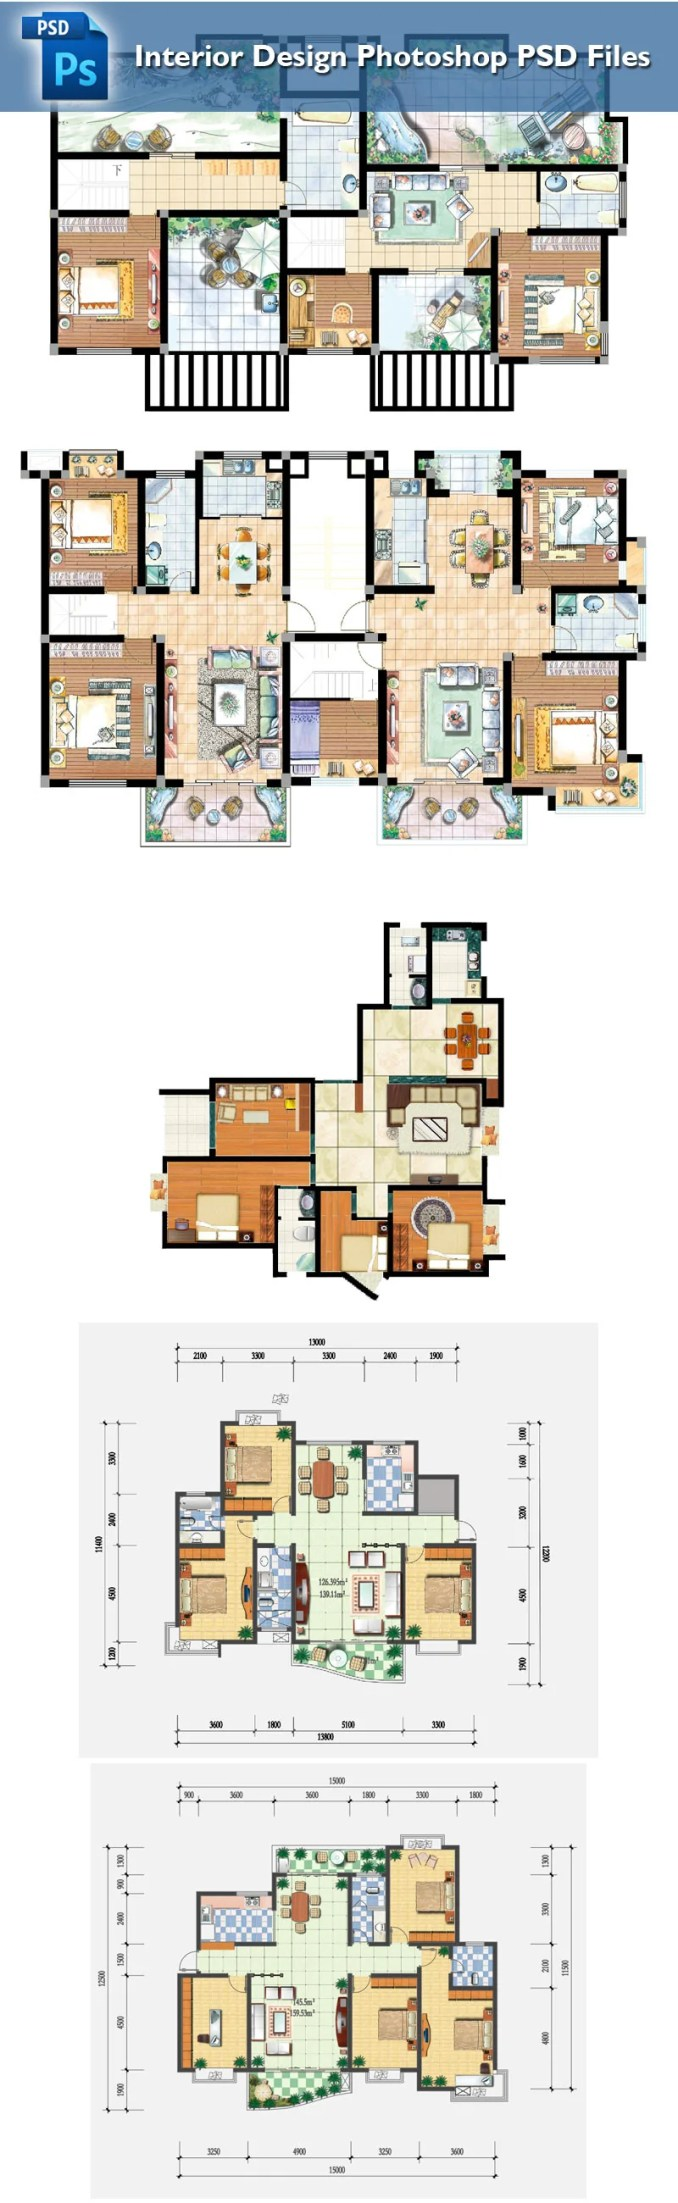 15 Types Of Interior Design Layouts Photoshop Psd Template V 2